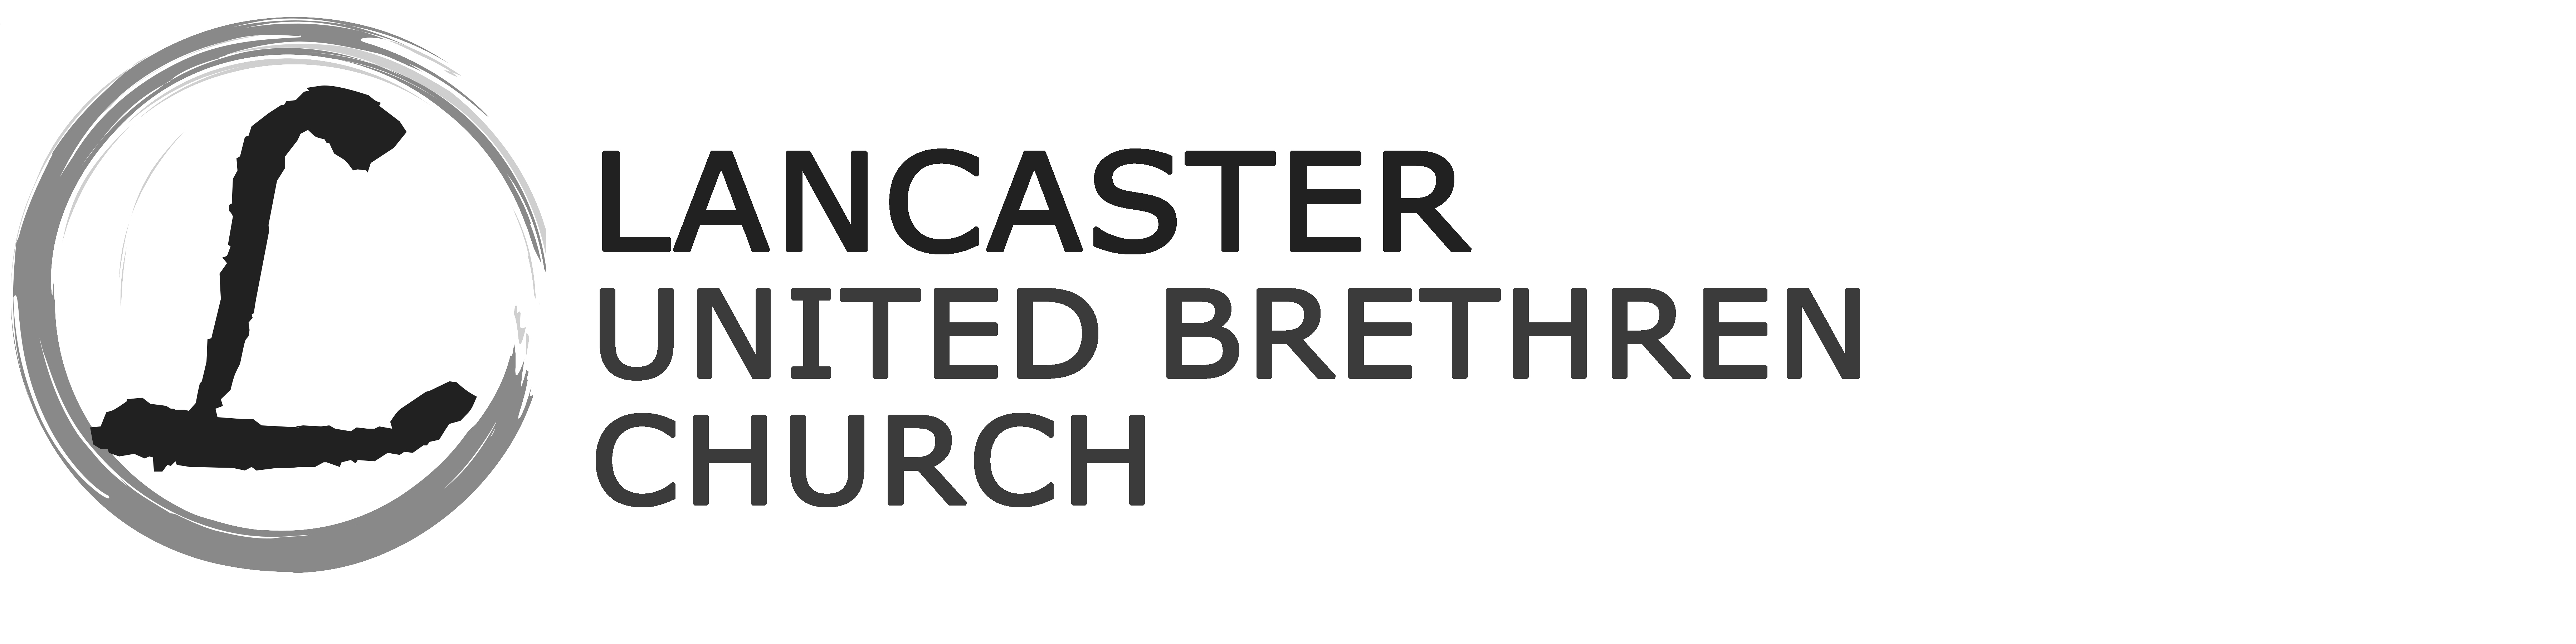 Lancaster United Brethren Church